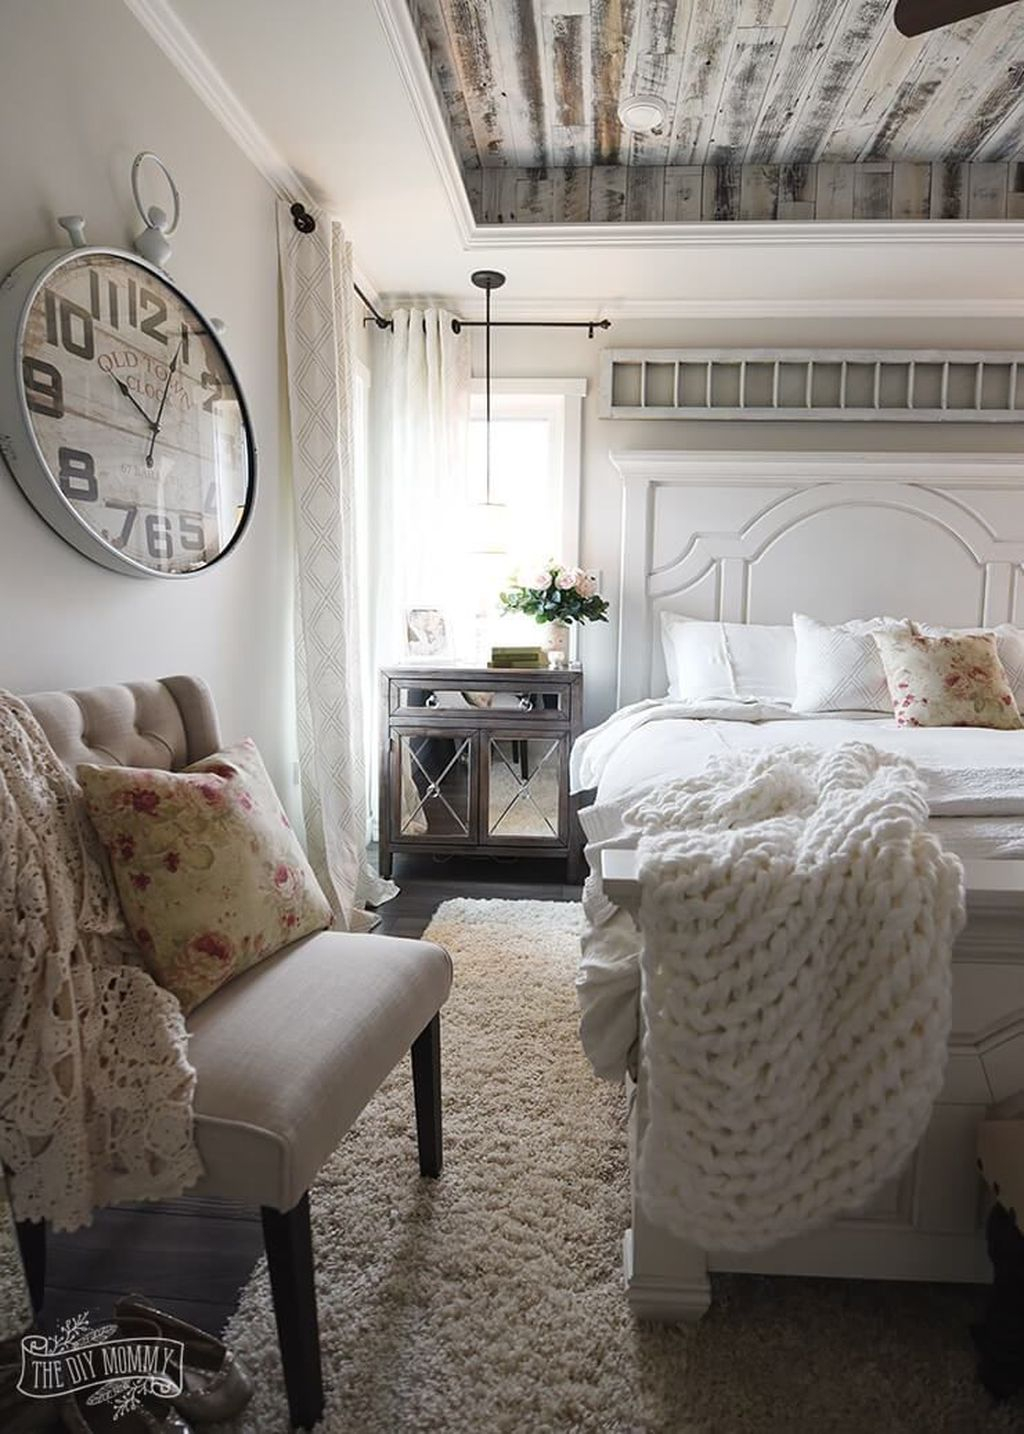 Cool French Country Master Bedroom Design Ideas With Farmhouse Style 35